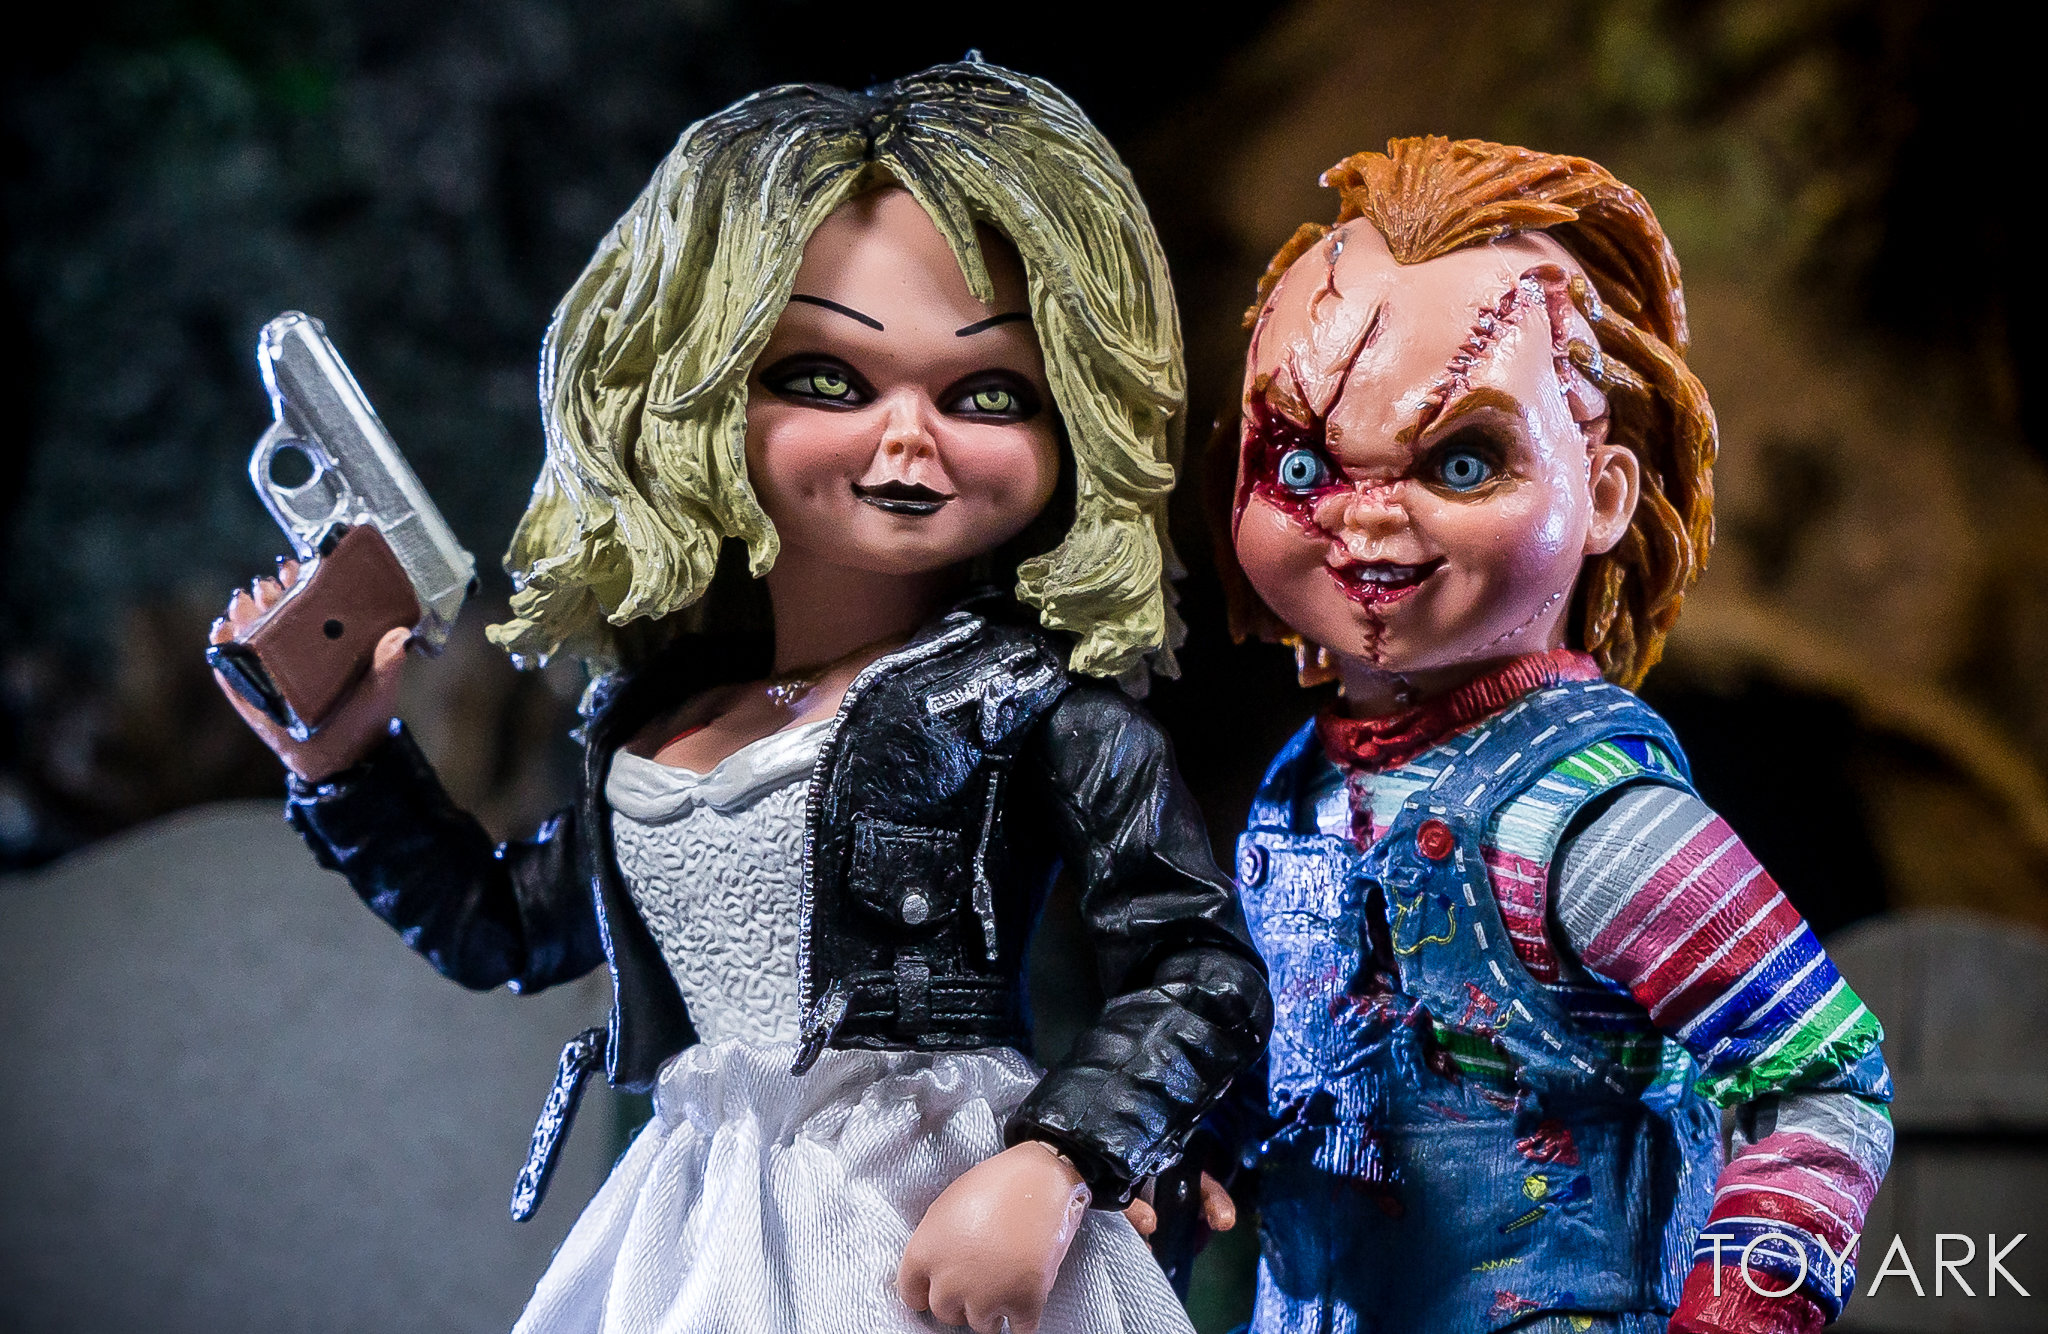 https://news.toyark.com/wp-content/uploads/sites/4/2019/01/Bride-of-Chucky-NECA-Set-048.jpg